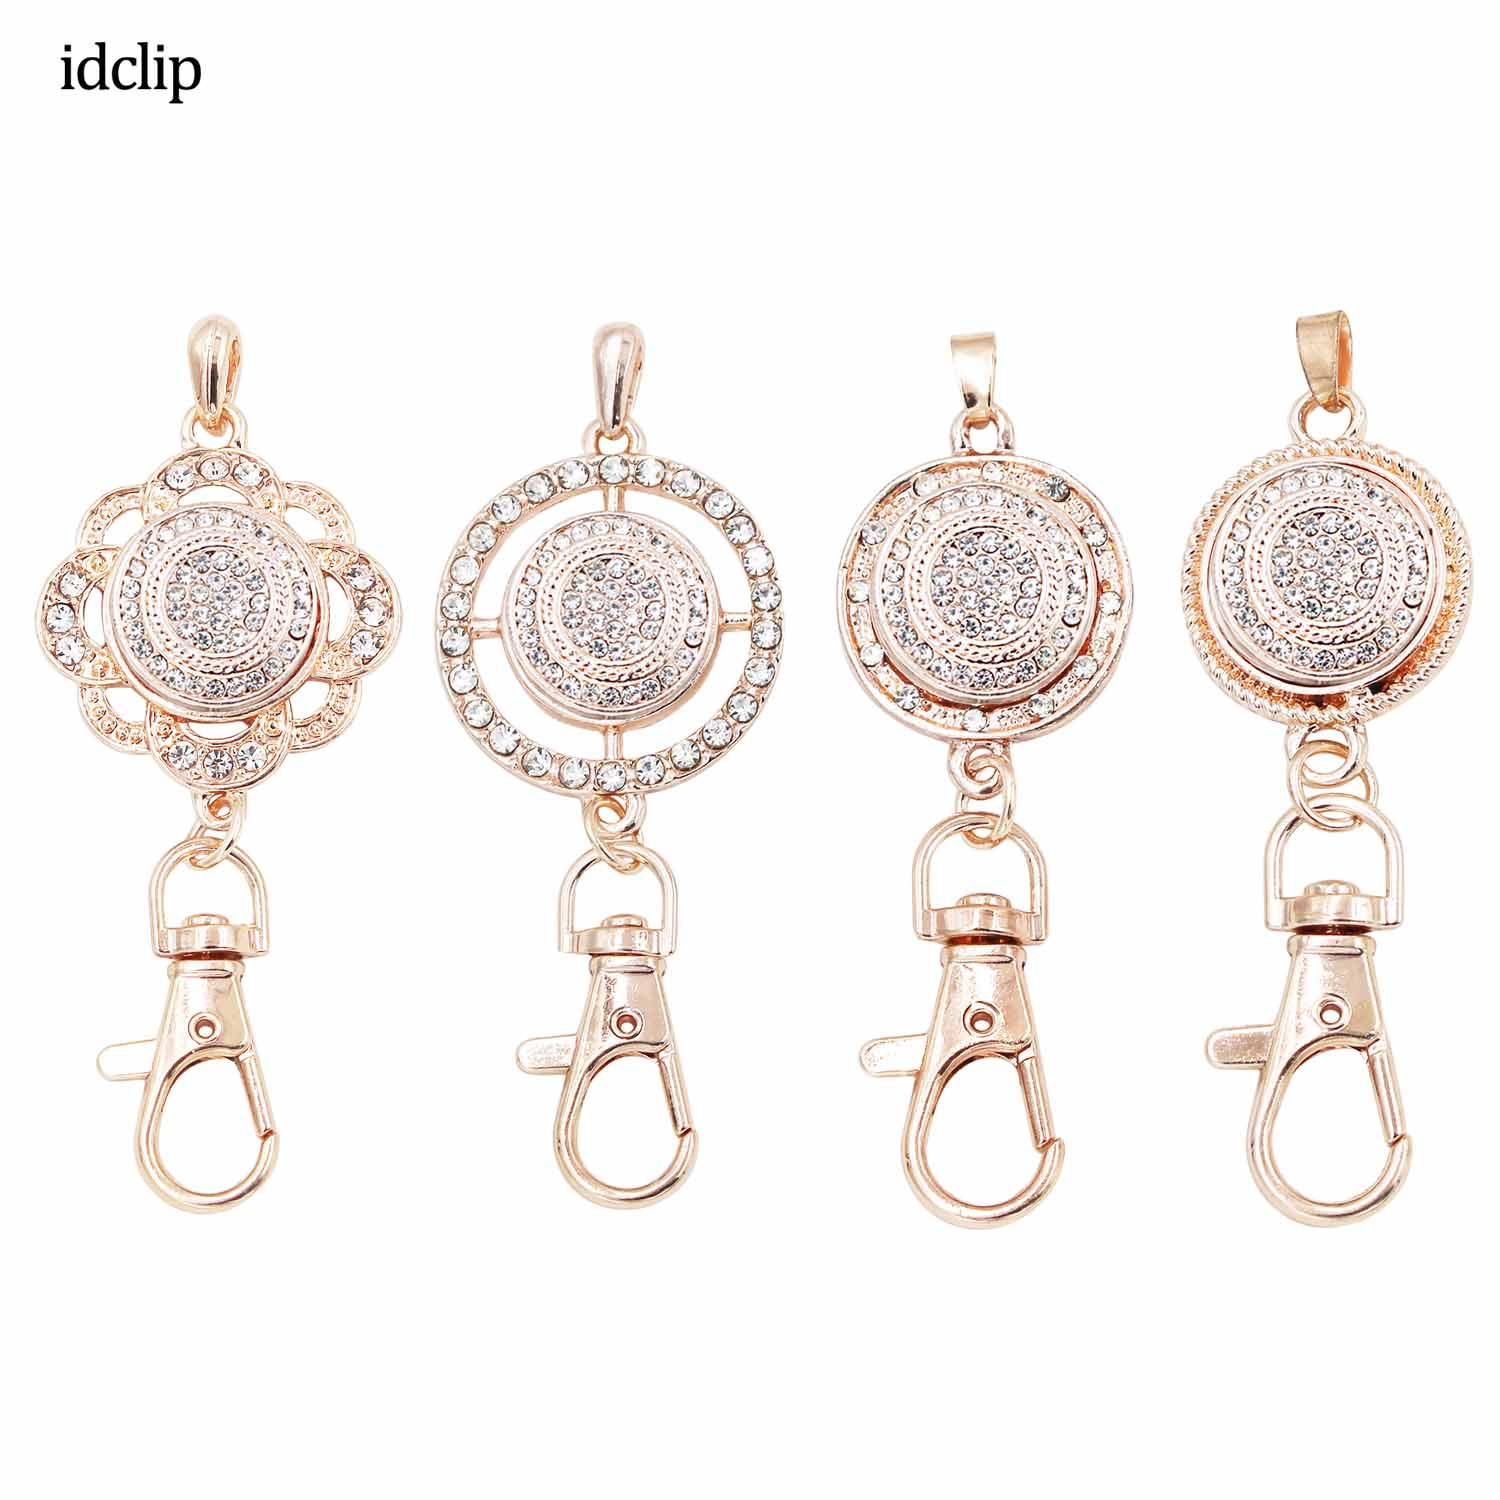 Idclip Gold Diamond Lanyard Badge Holder Necklace Snap Jewelry Charms Pendant Clip Office ID Holder